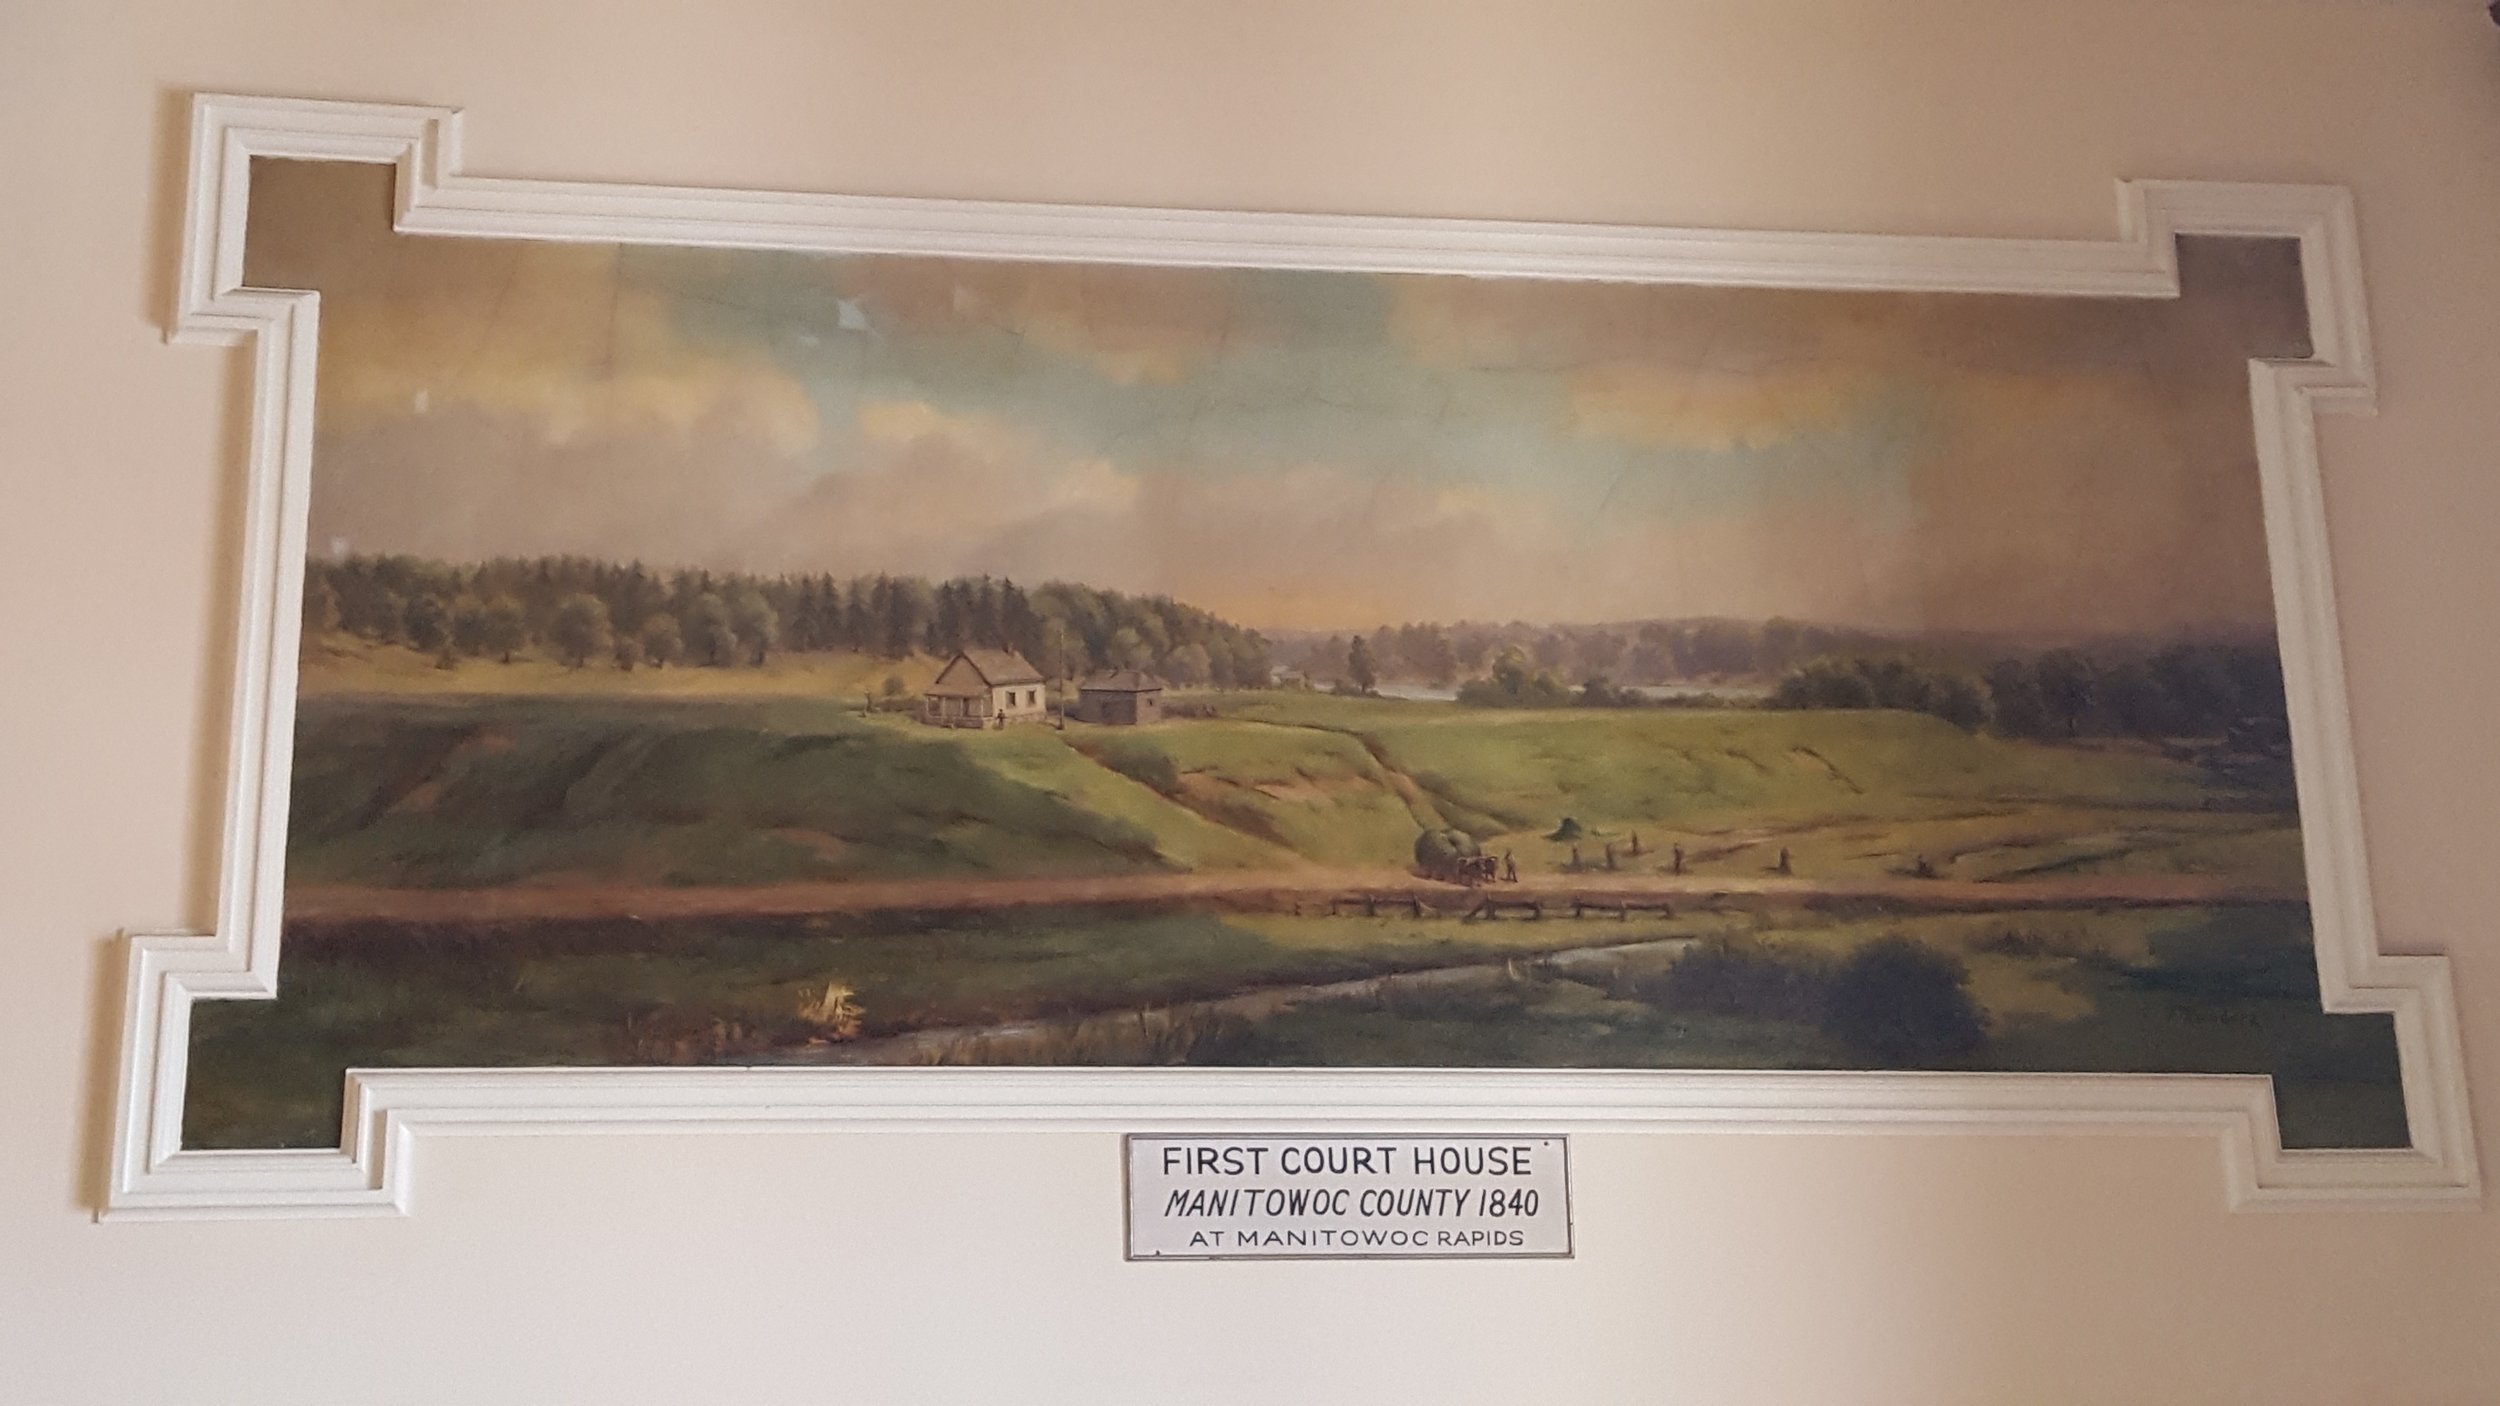 The First Court House and Jail at Manitowoc Rapids mural,painted by Franz Rohrbeck in 1912, is located in the west staircase at the Manitowoc County Court House.